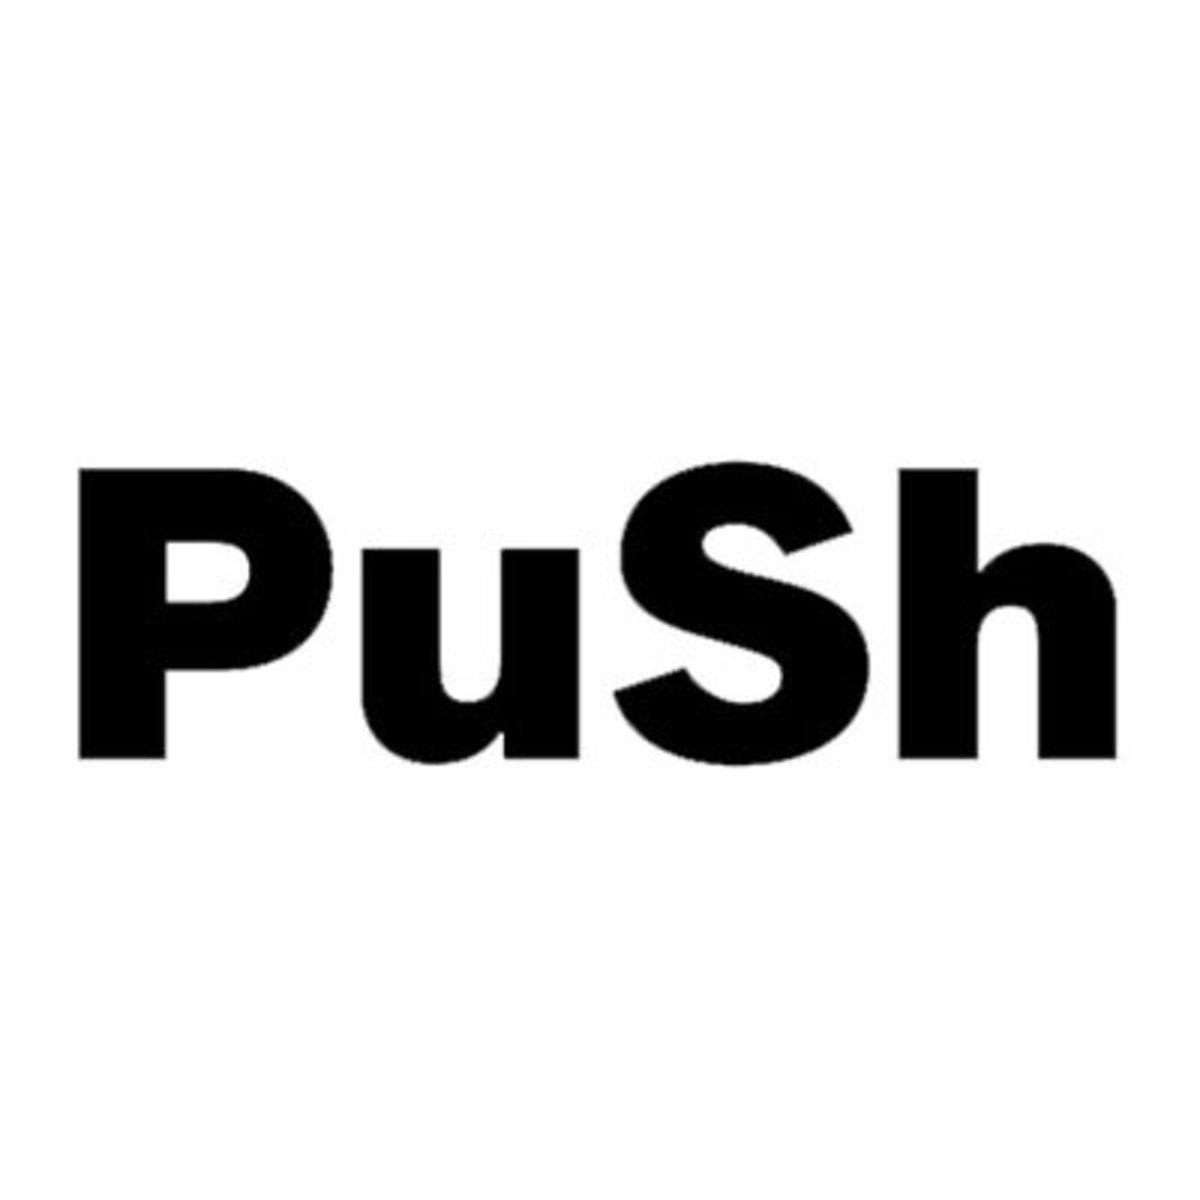 pushing-you-in-the-right-directions